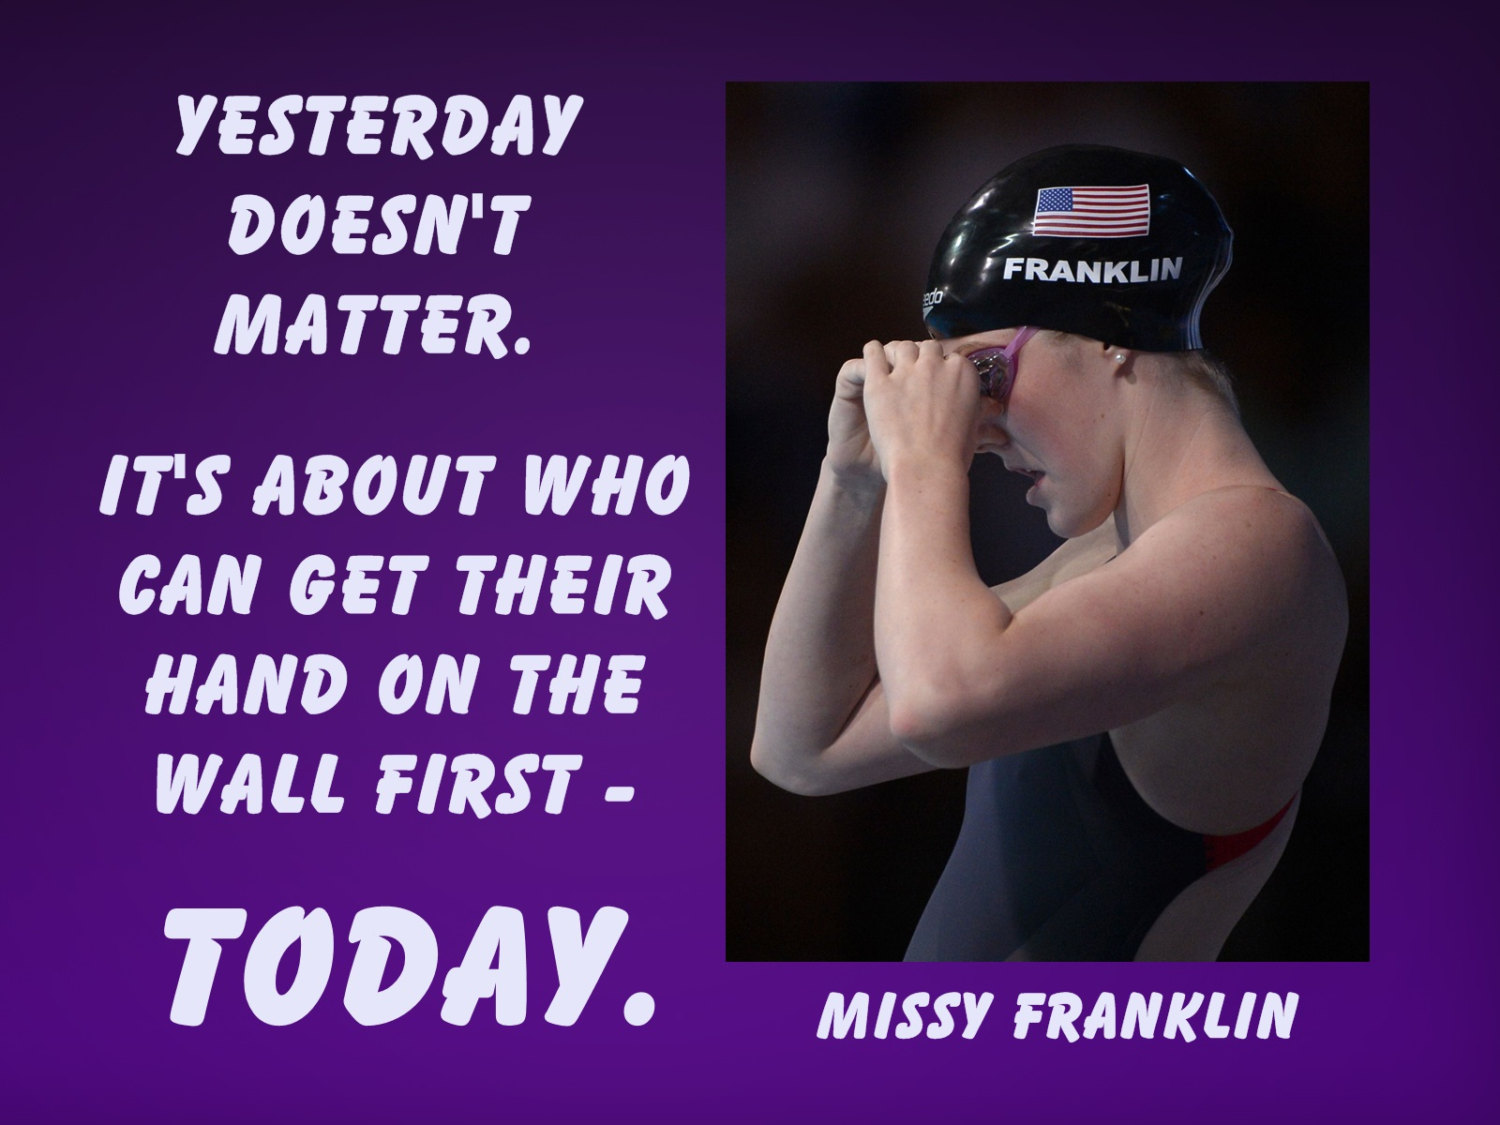 Famous tv character quotes quotesgram - Missy Franklin Swimming Quotes Quotesgram